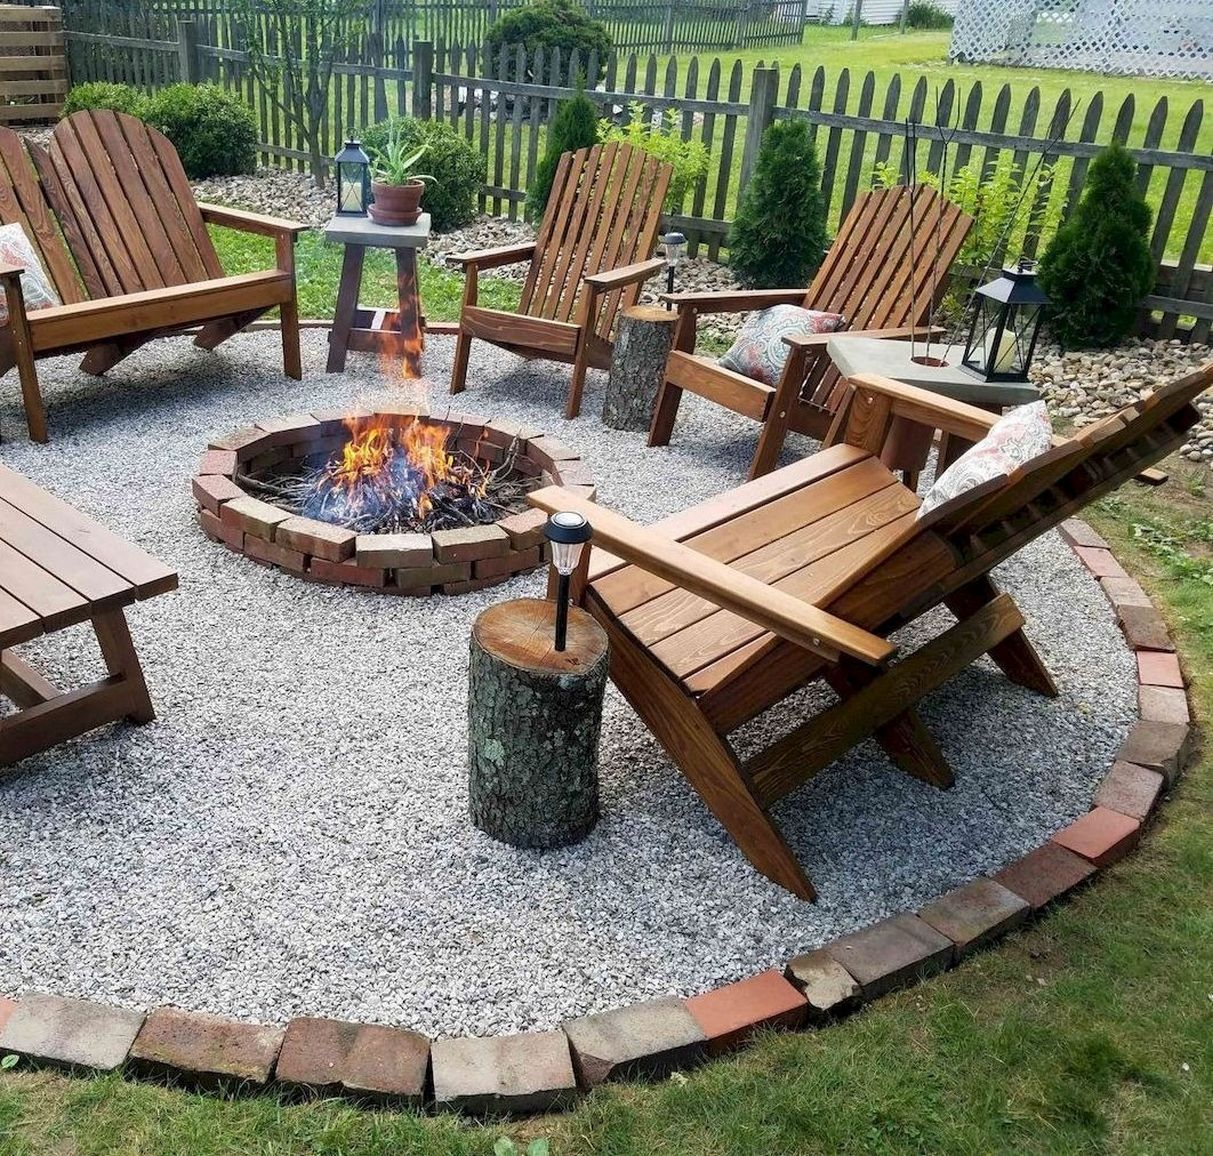 24 Backyard Fire Pit Ideas Landscaping - Create a Relaxing ...